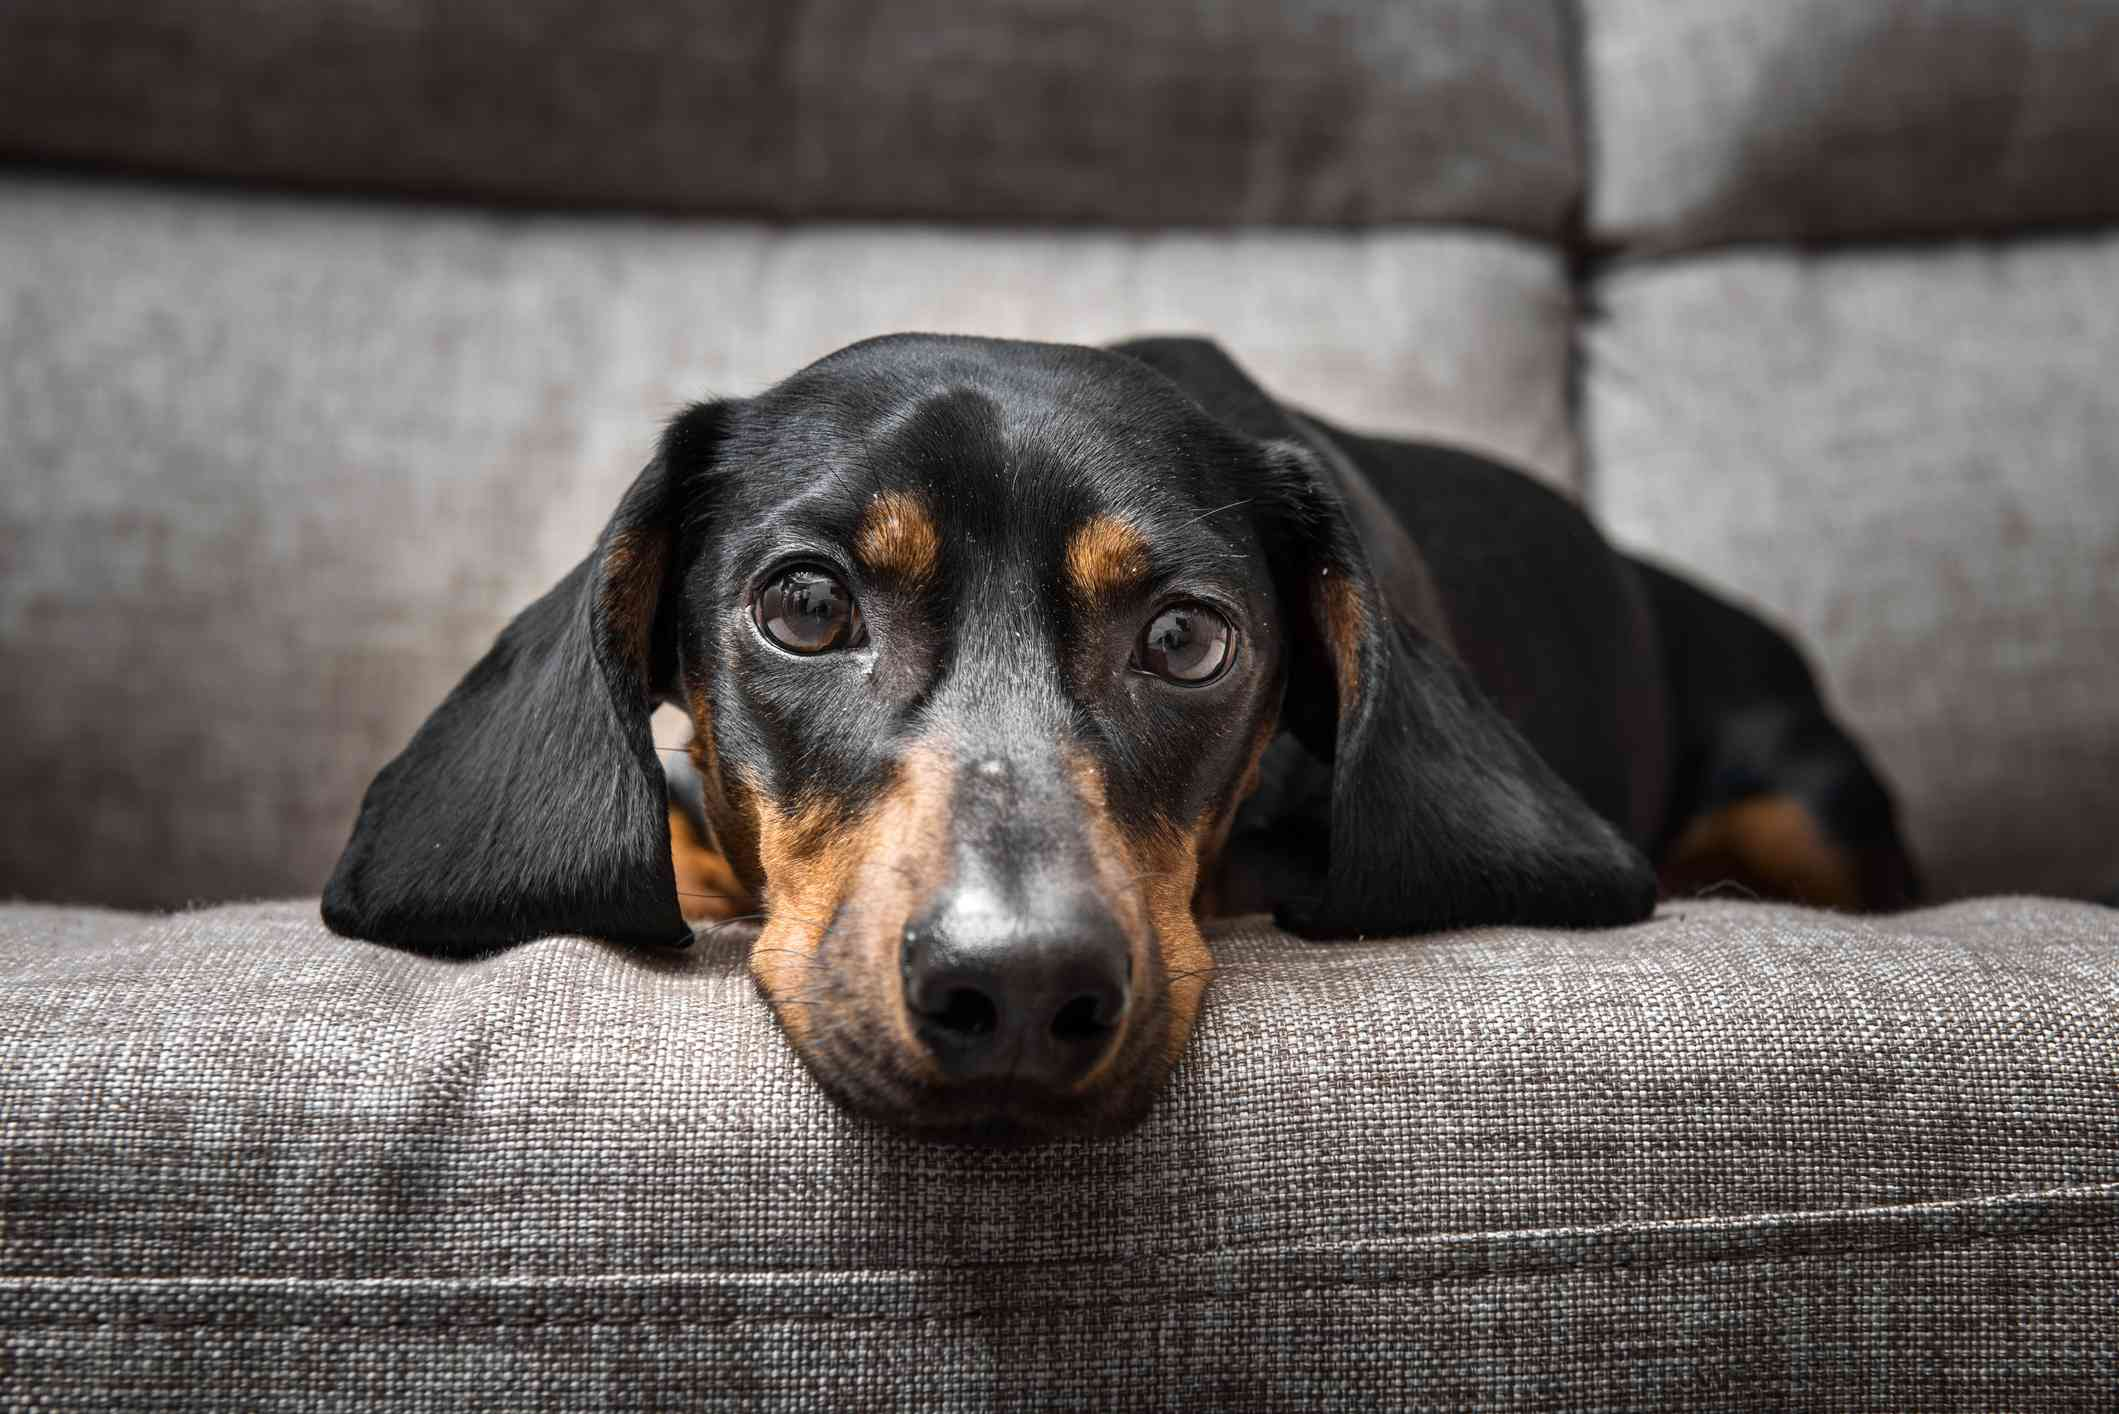 Dachshund lying on grey couch looking at camera.